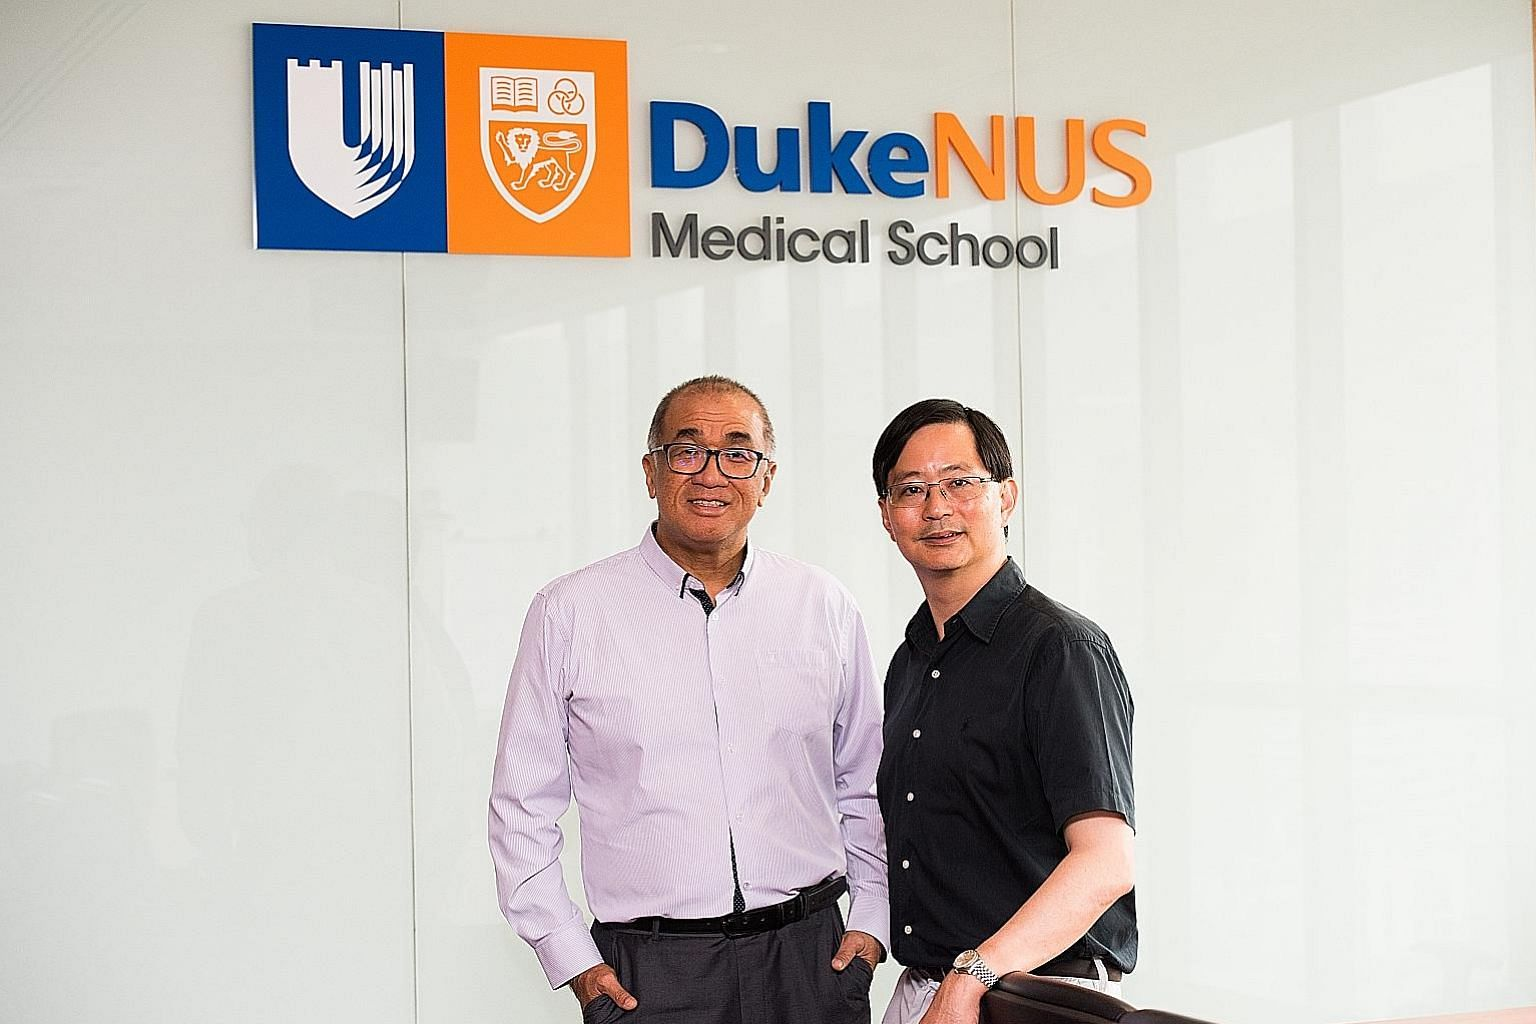 Duke-NUS Medical School professors Teh Bin Tean (far left) and Patrick Tan are part of the team, which also included scientists from Japan, Taiwan and Thailand. They found that many Asian cancers could be linked to specific exposures and environmenta